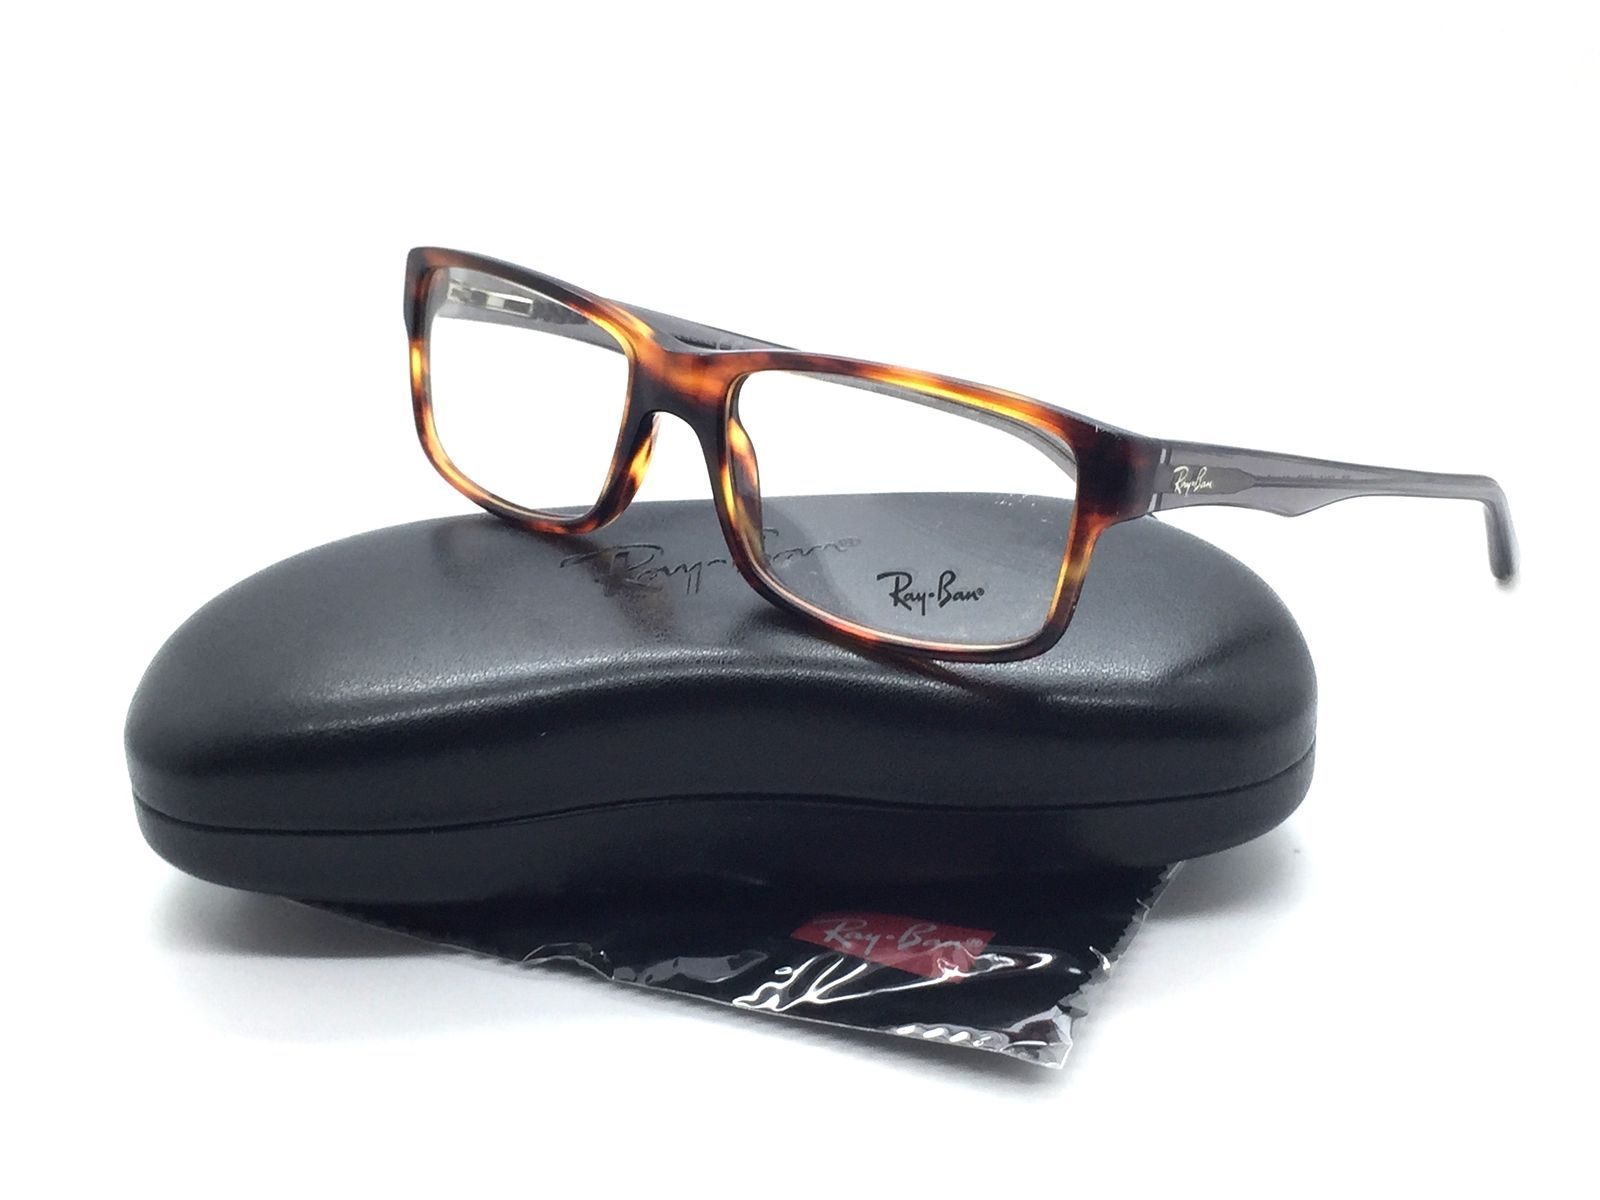 c280416cd7 Ray Ban Unisex Tortoise Rectangular New and 50 similar items